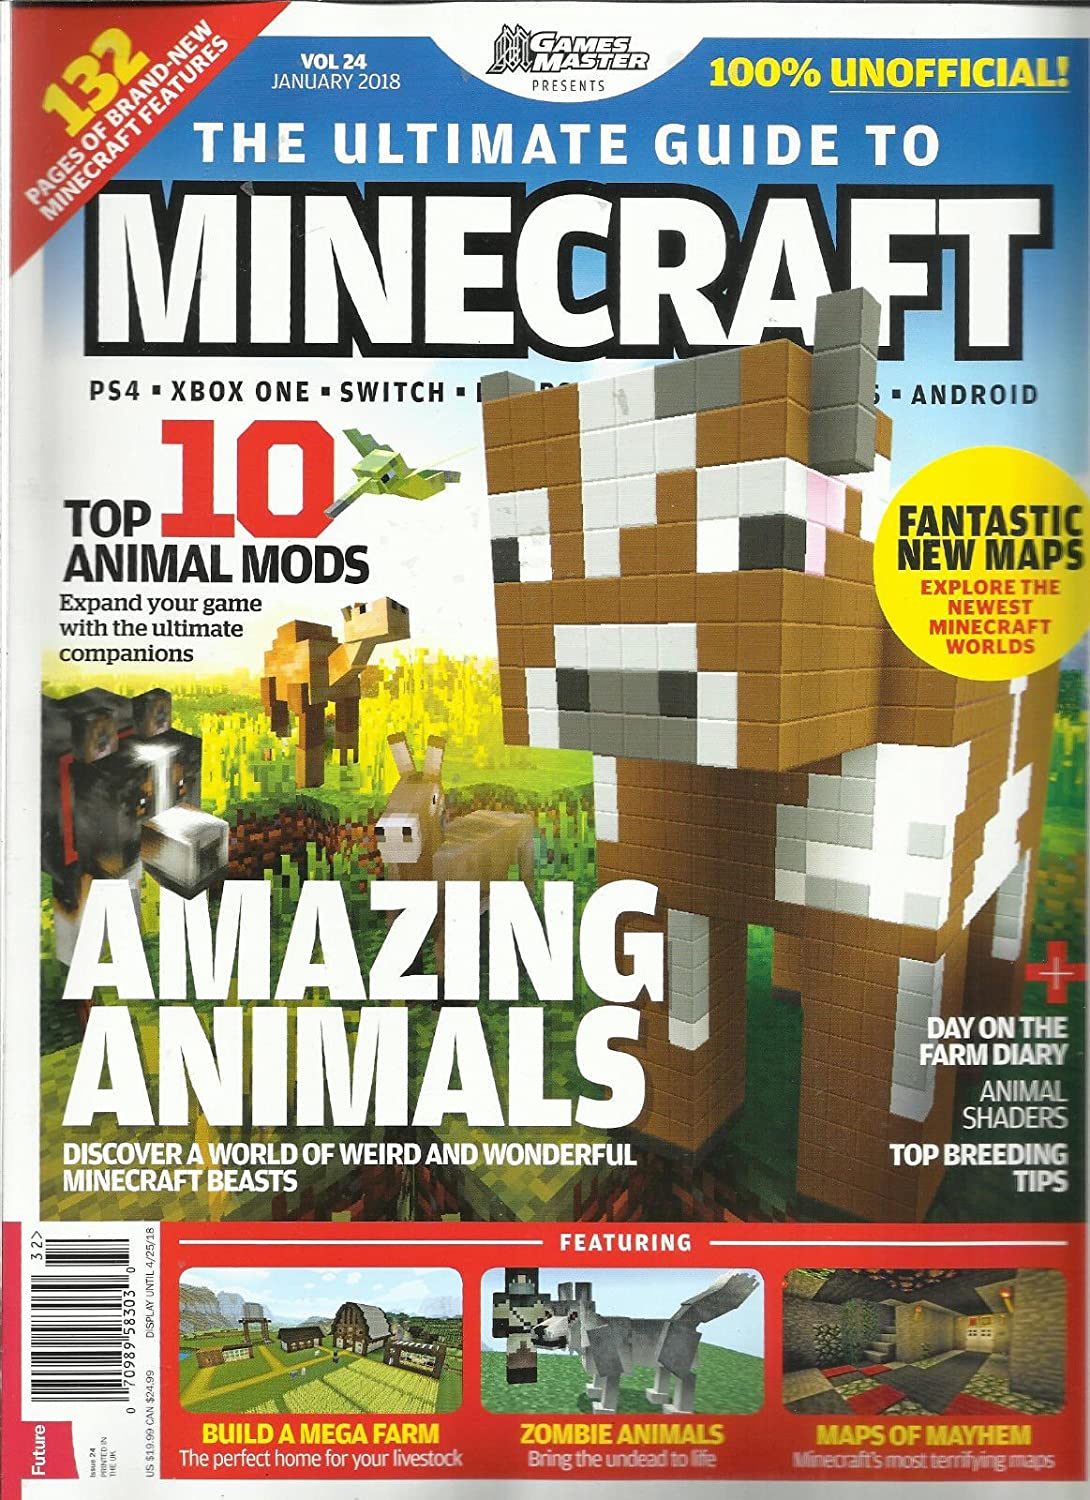 GAMES MASTER PRESENT, THE ULTIMATE GUIDE TO MINECRAFT, JANUARY, 2018 VOL. 24 s3457